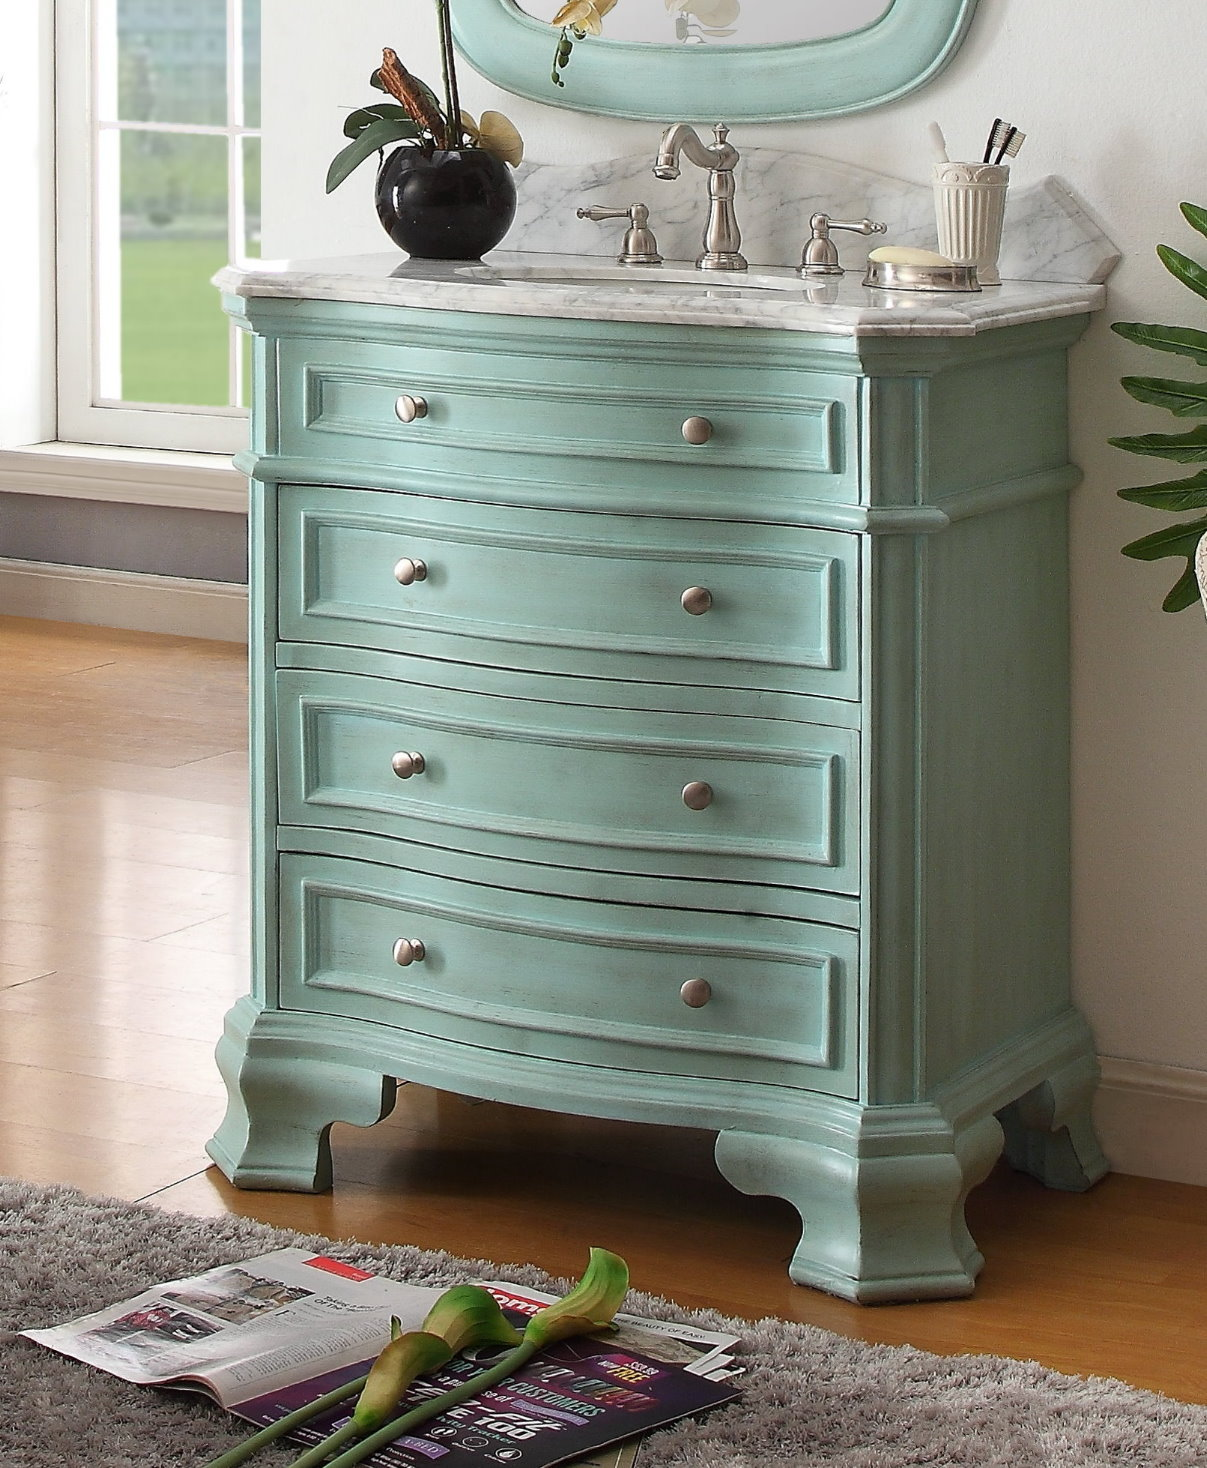 Nautical Style Bathroom Vanities: 32 Inch Bathroom Vanity 3 Drawers Costal Cottage Beach